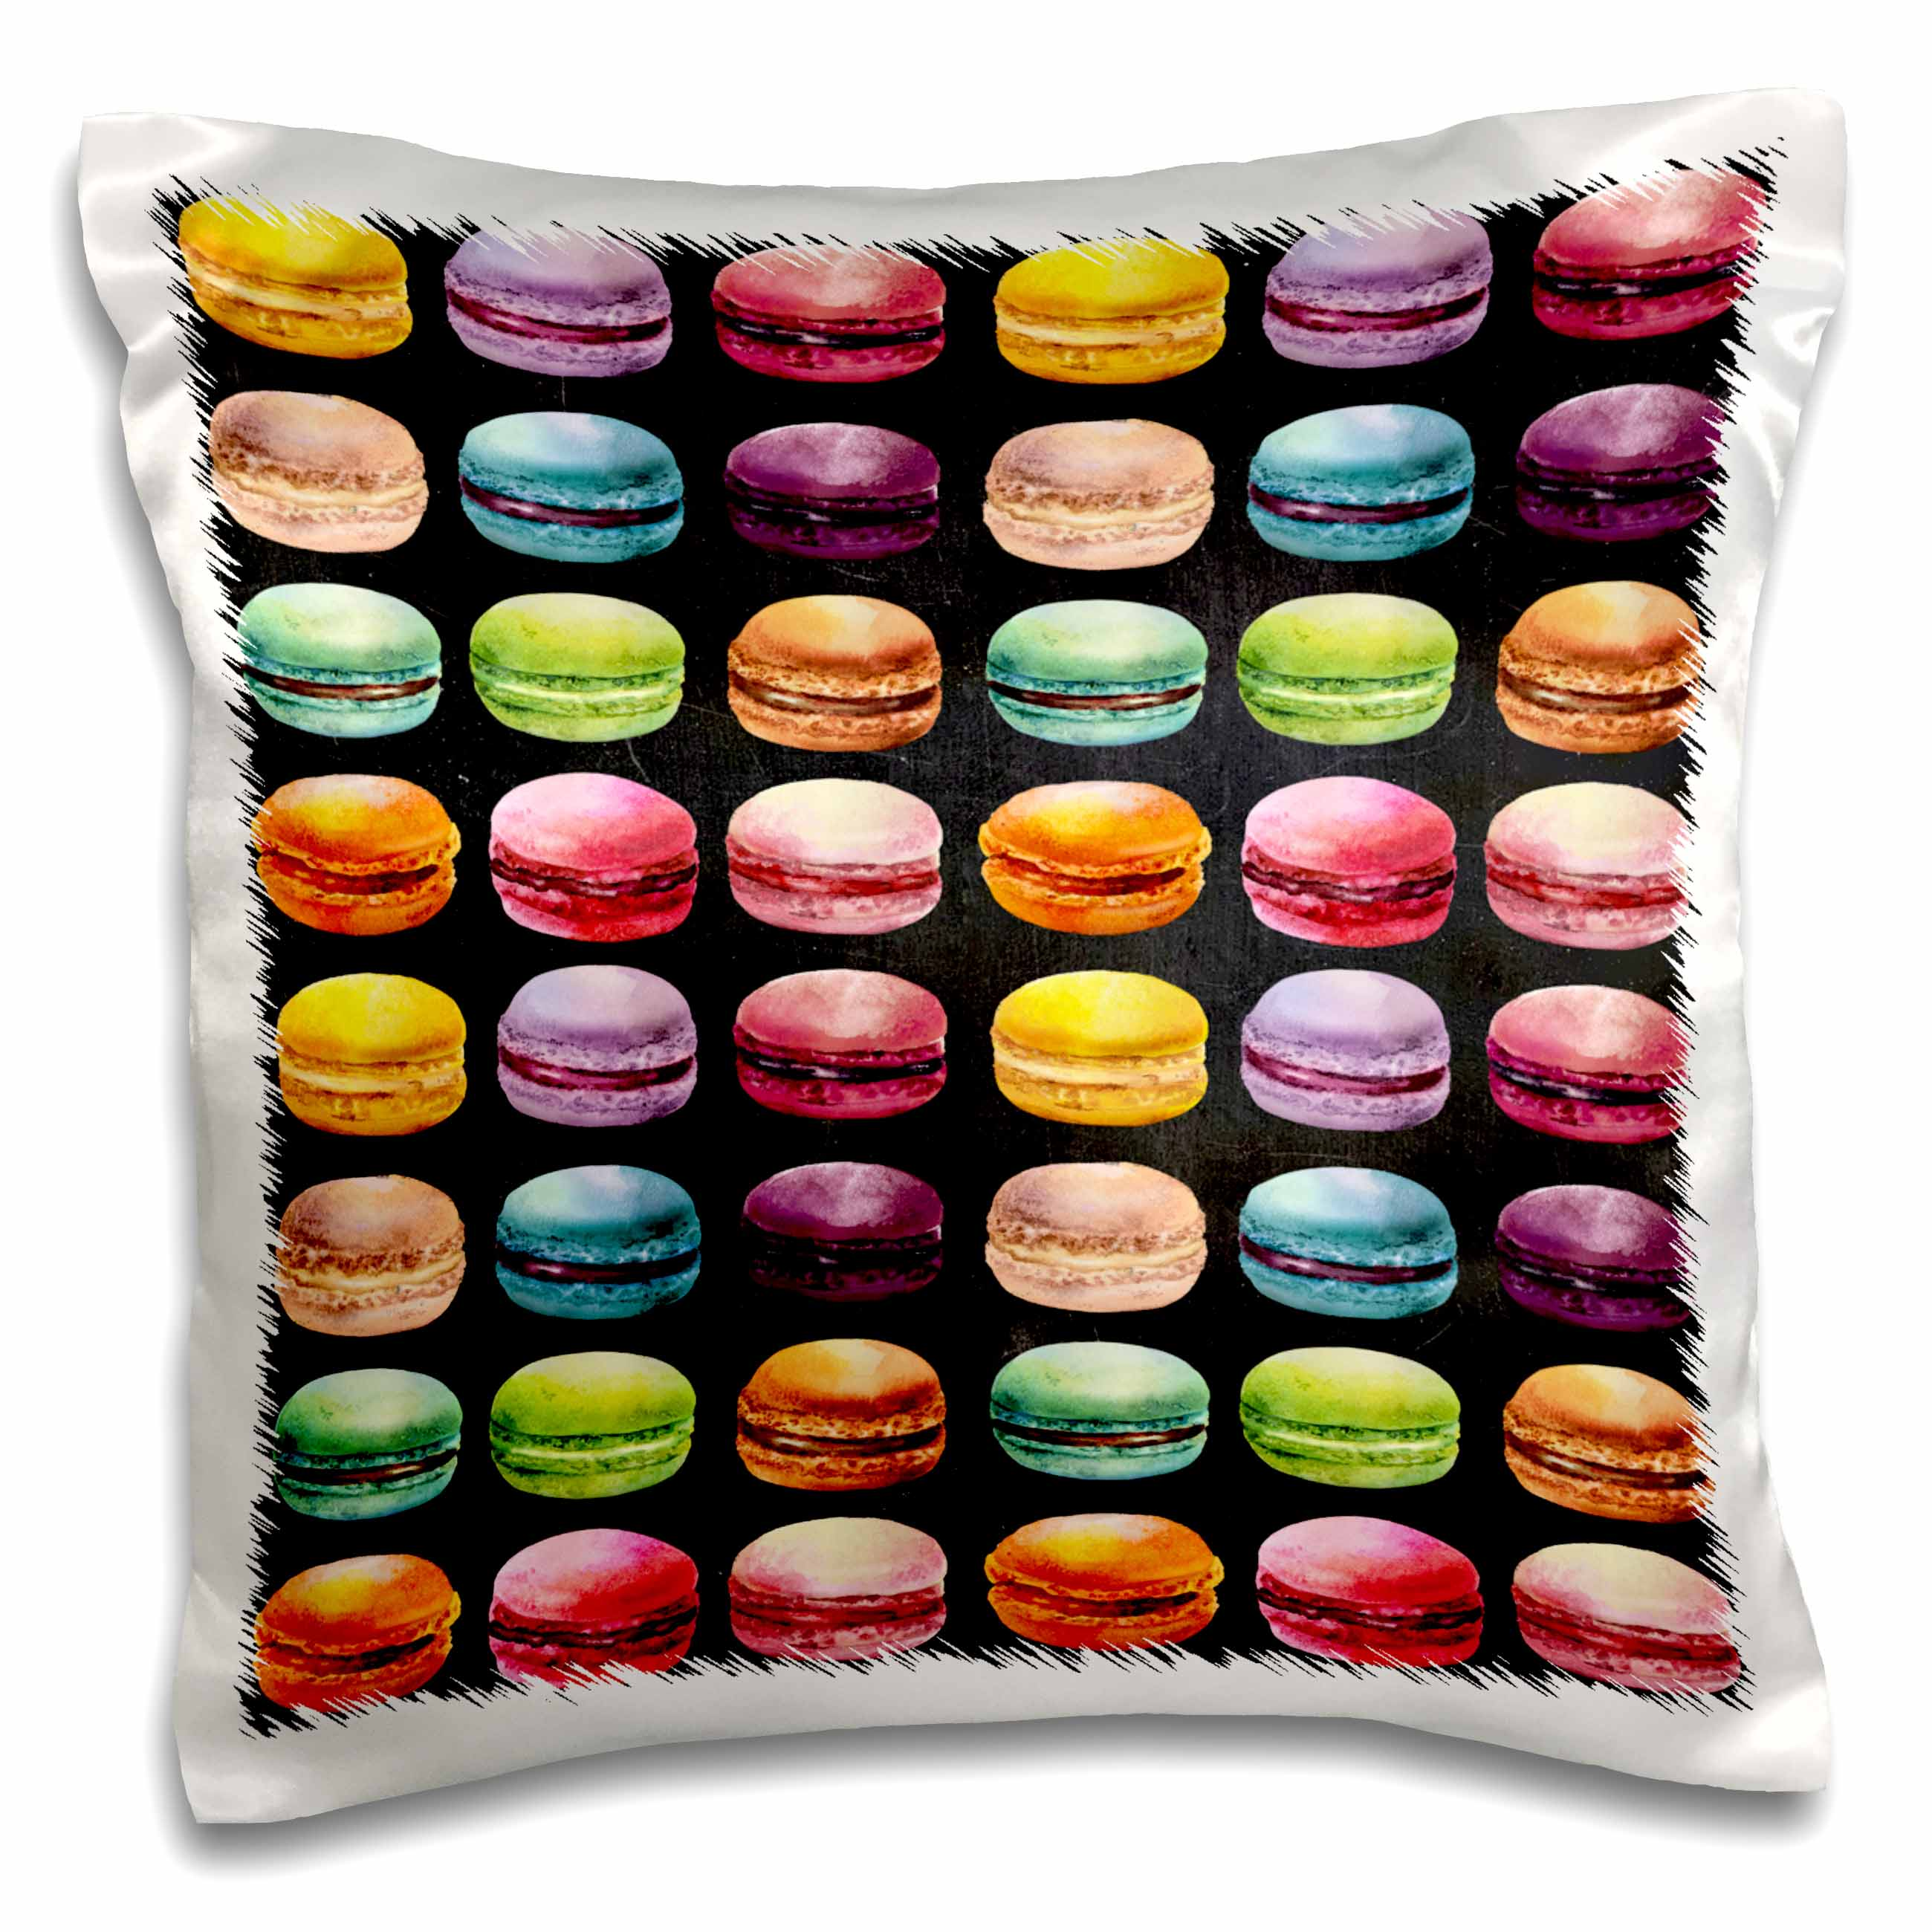 3dRose Cute French Macaroon Cookies Pattern On A Black Background - Pillow Case, 16 by 16-inch